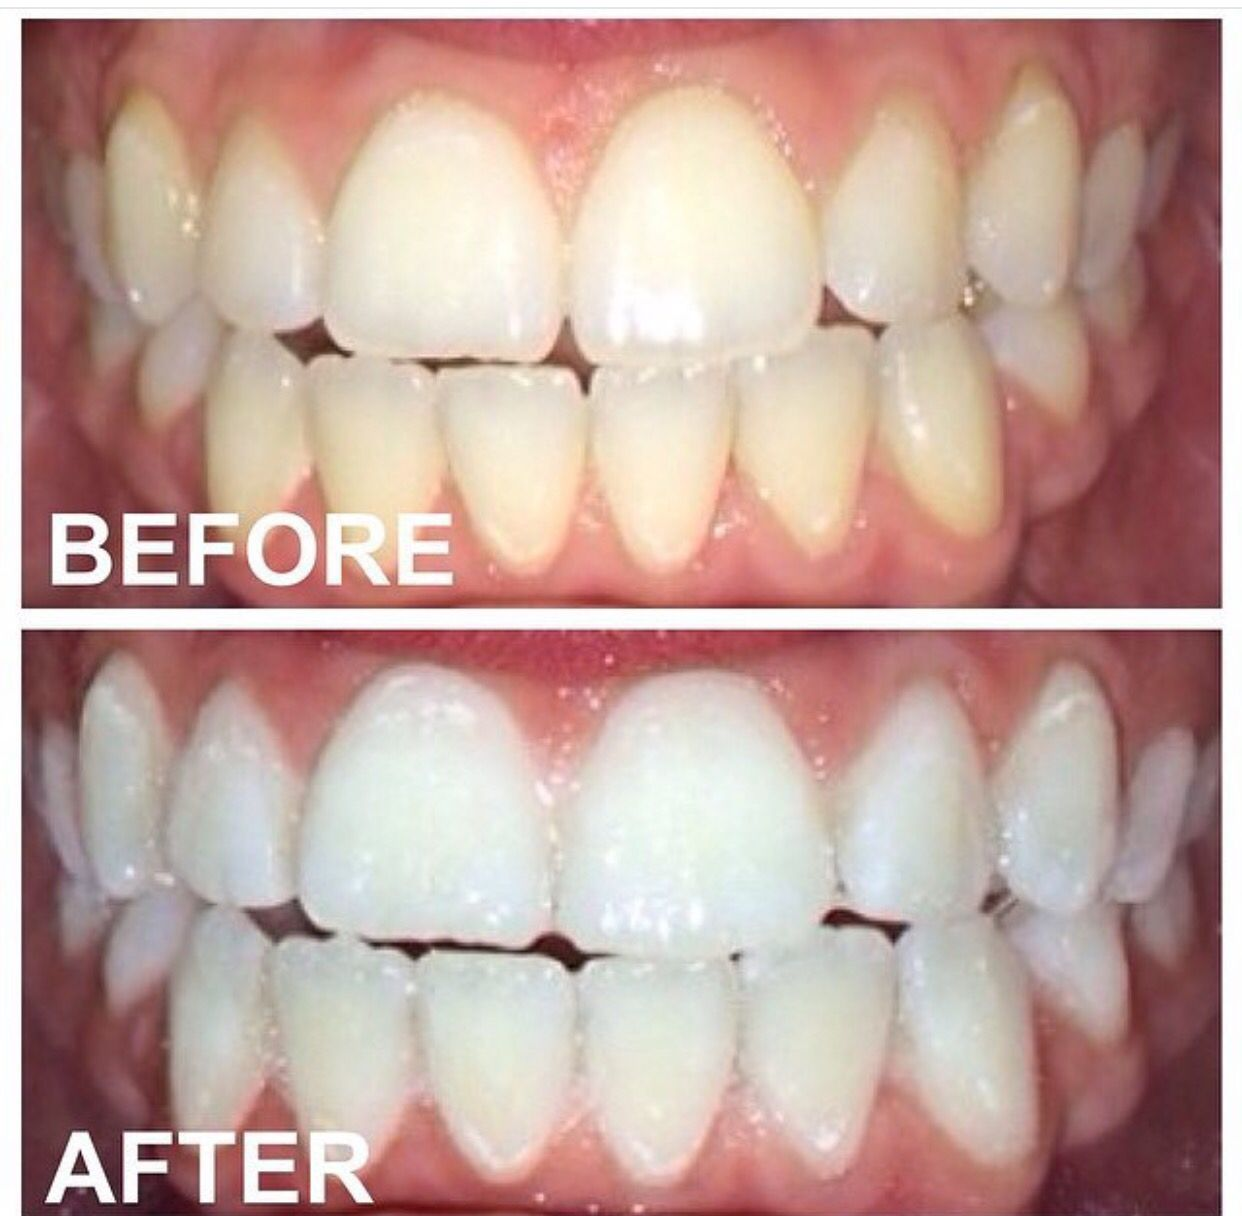 Colgate teeth whitening teeth whitening products pinterest teeth - Get Shades Whiter In A Hour Find This Pin And More On Beaming White Teeth